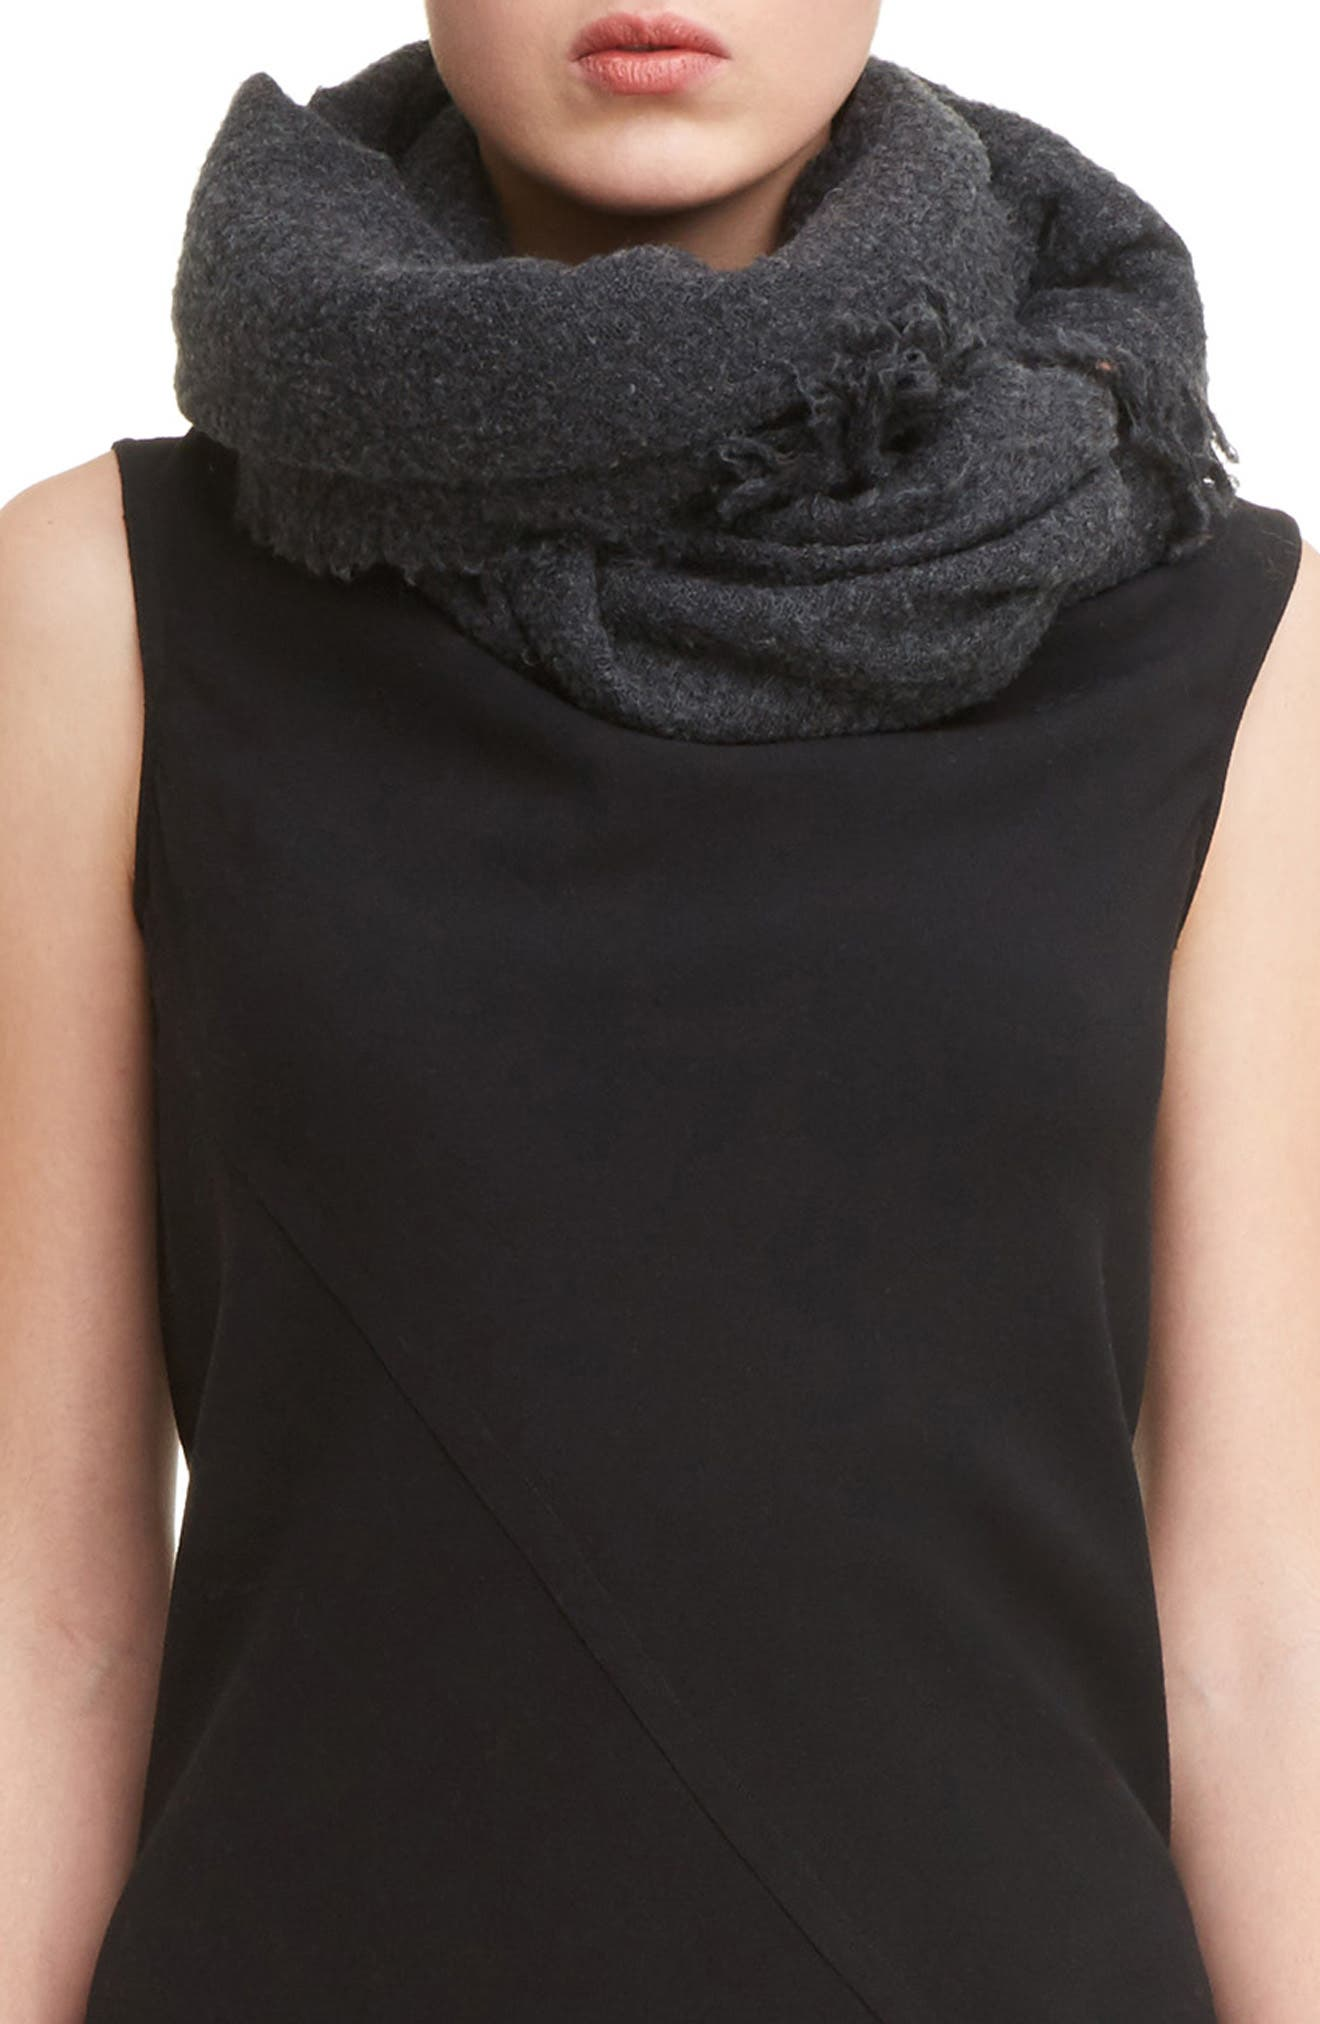 Alternate Image 1 Selected - Rick Owens Wool Blend Scarf